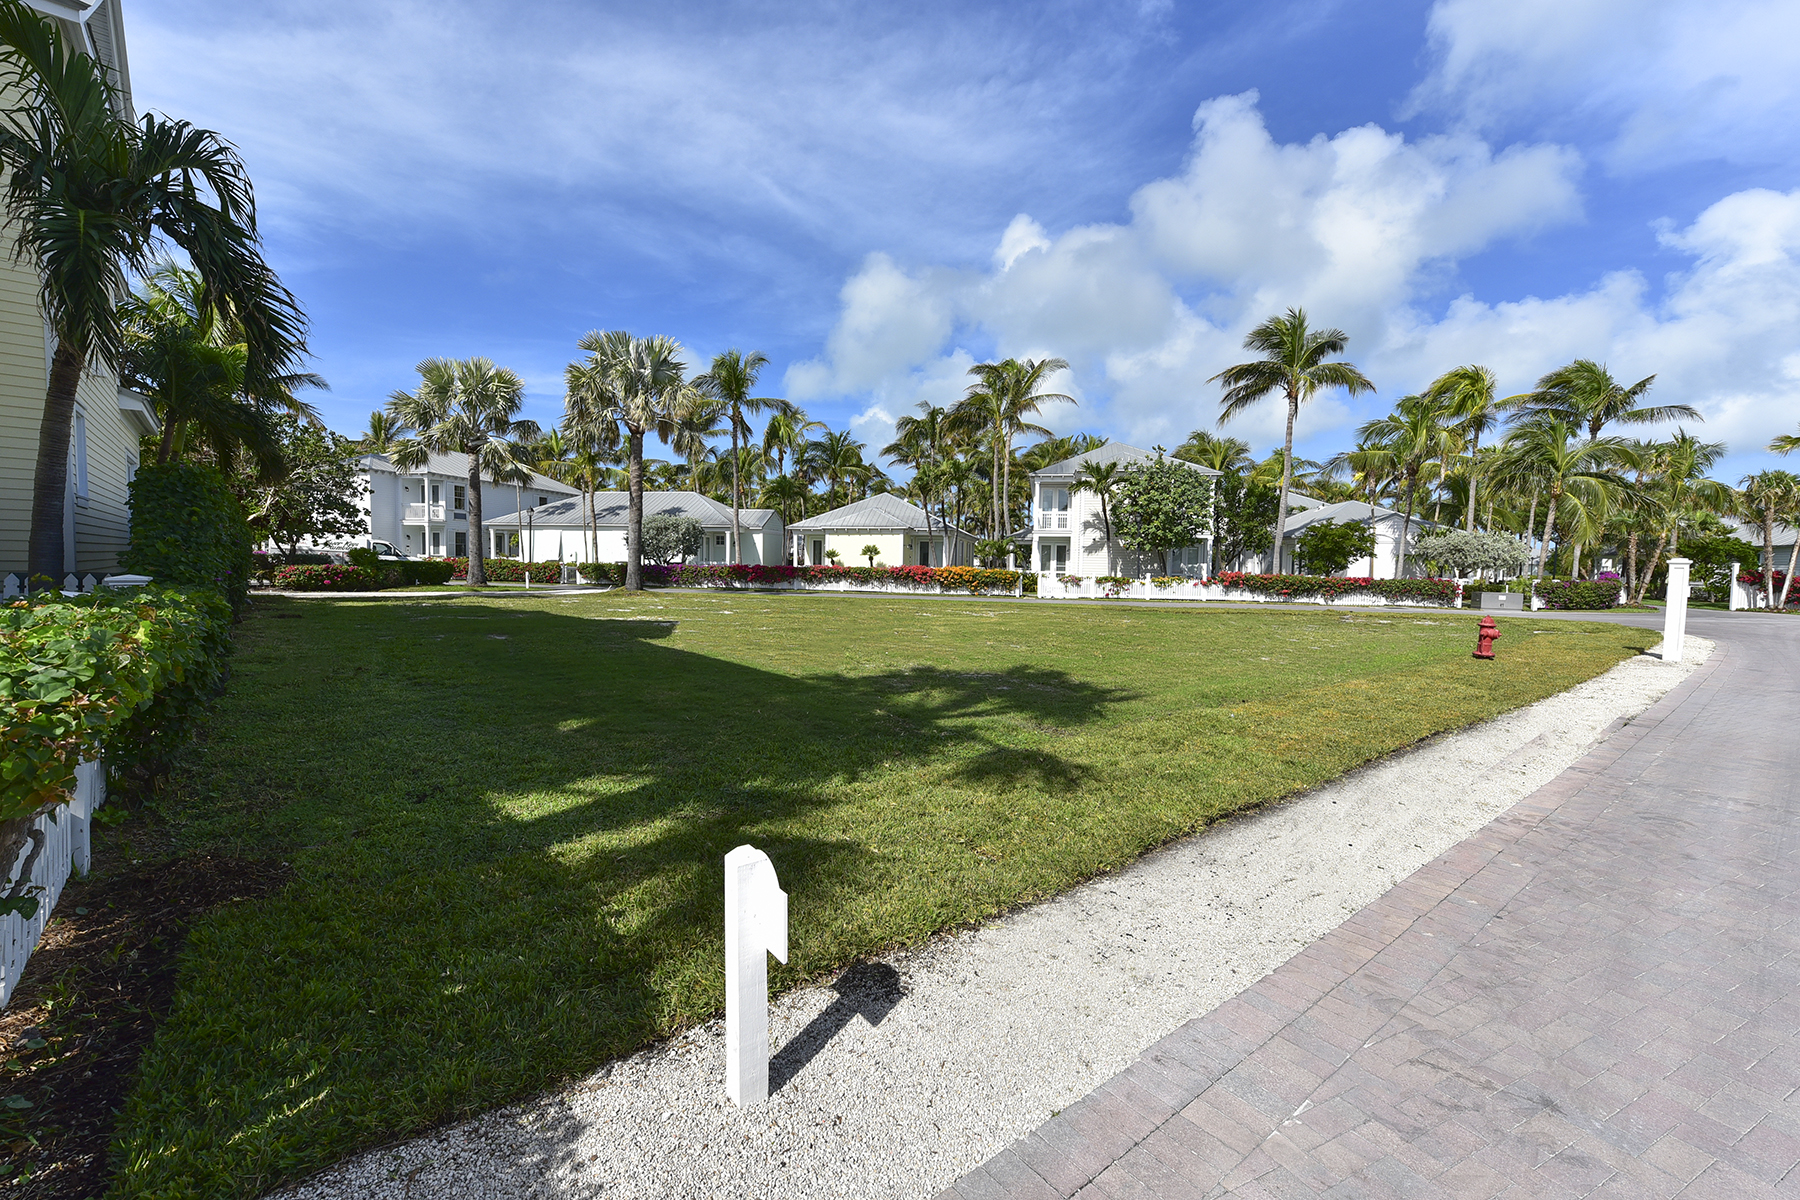 Terreno por un Venta en Build Your Dream Home on a Private Island 60 Sunset Key Drive Key West, Florida 33040 Estados Unidos